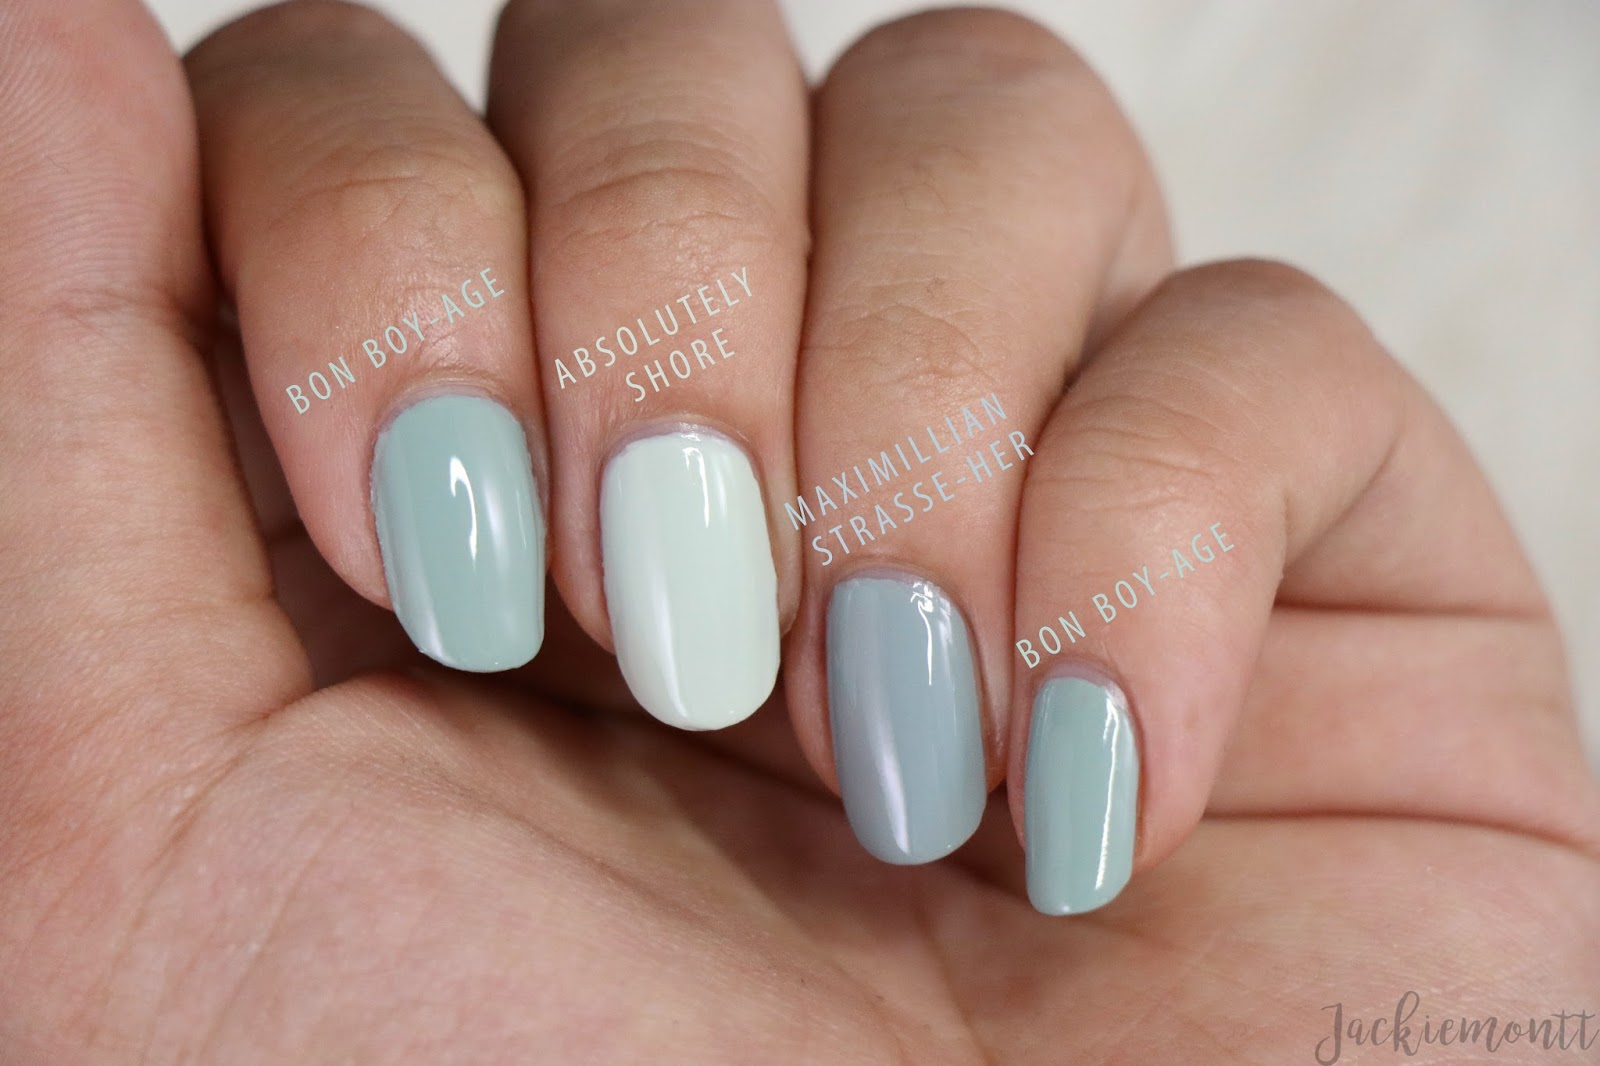 Essie Spring 2018 Swatches and Review - JACKIEMONTT